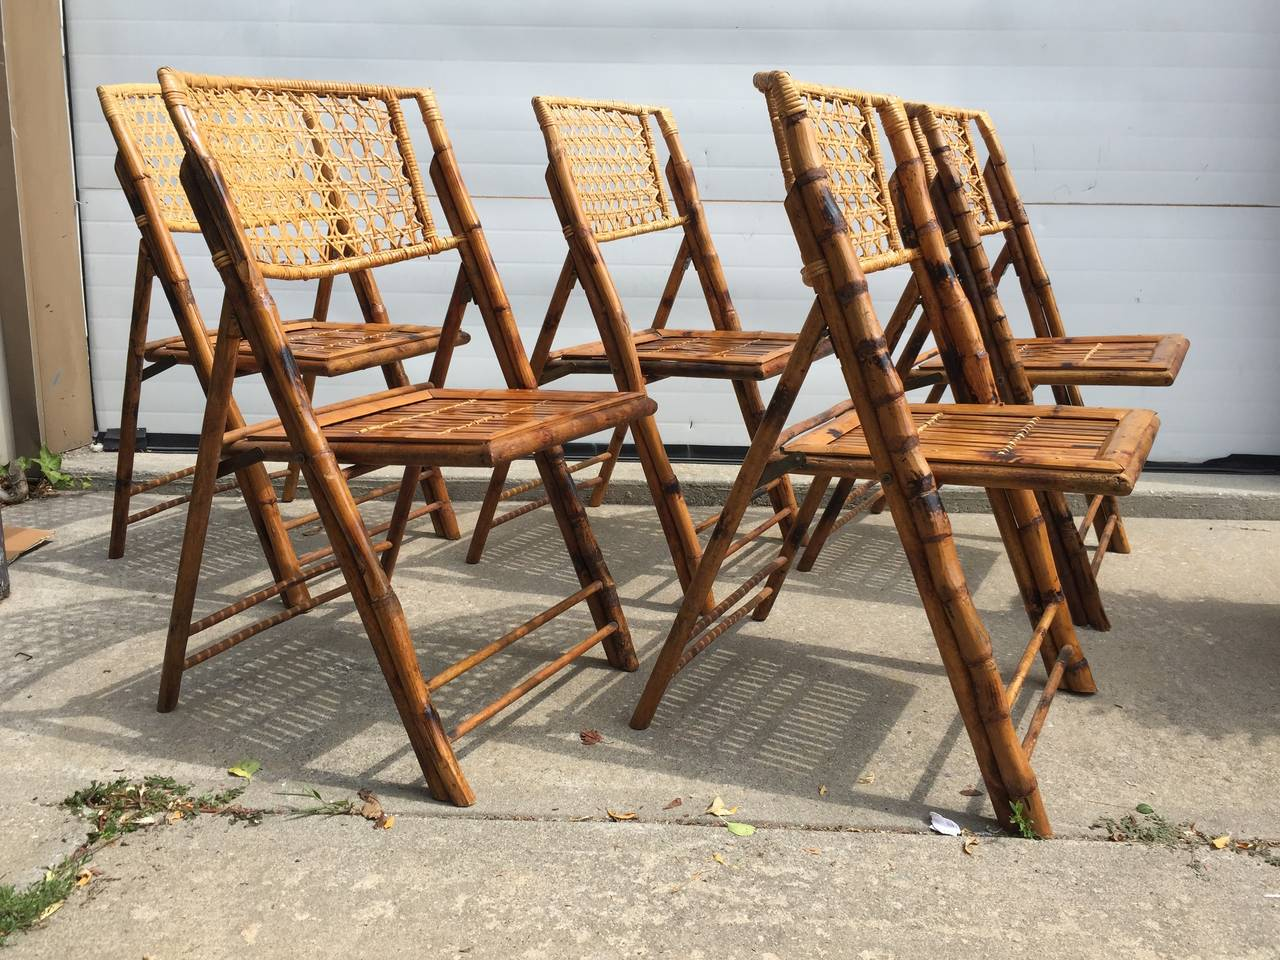 bamboo rattan chairs. Set Of Five Scorched Bamboo Frame Folding Chairs With Rattan Seat And Back For Sale 2 A